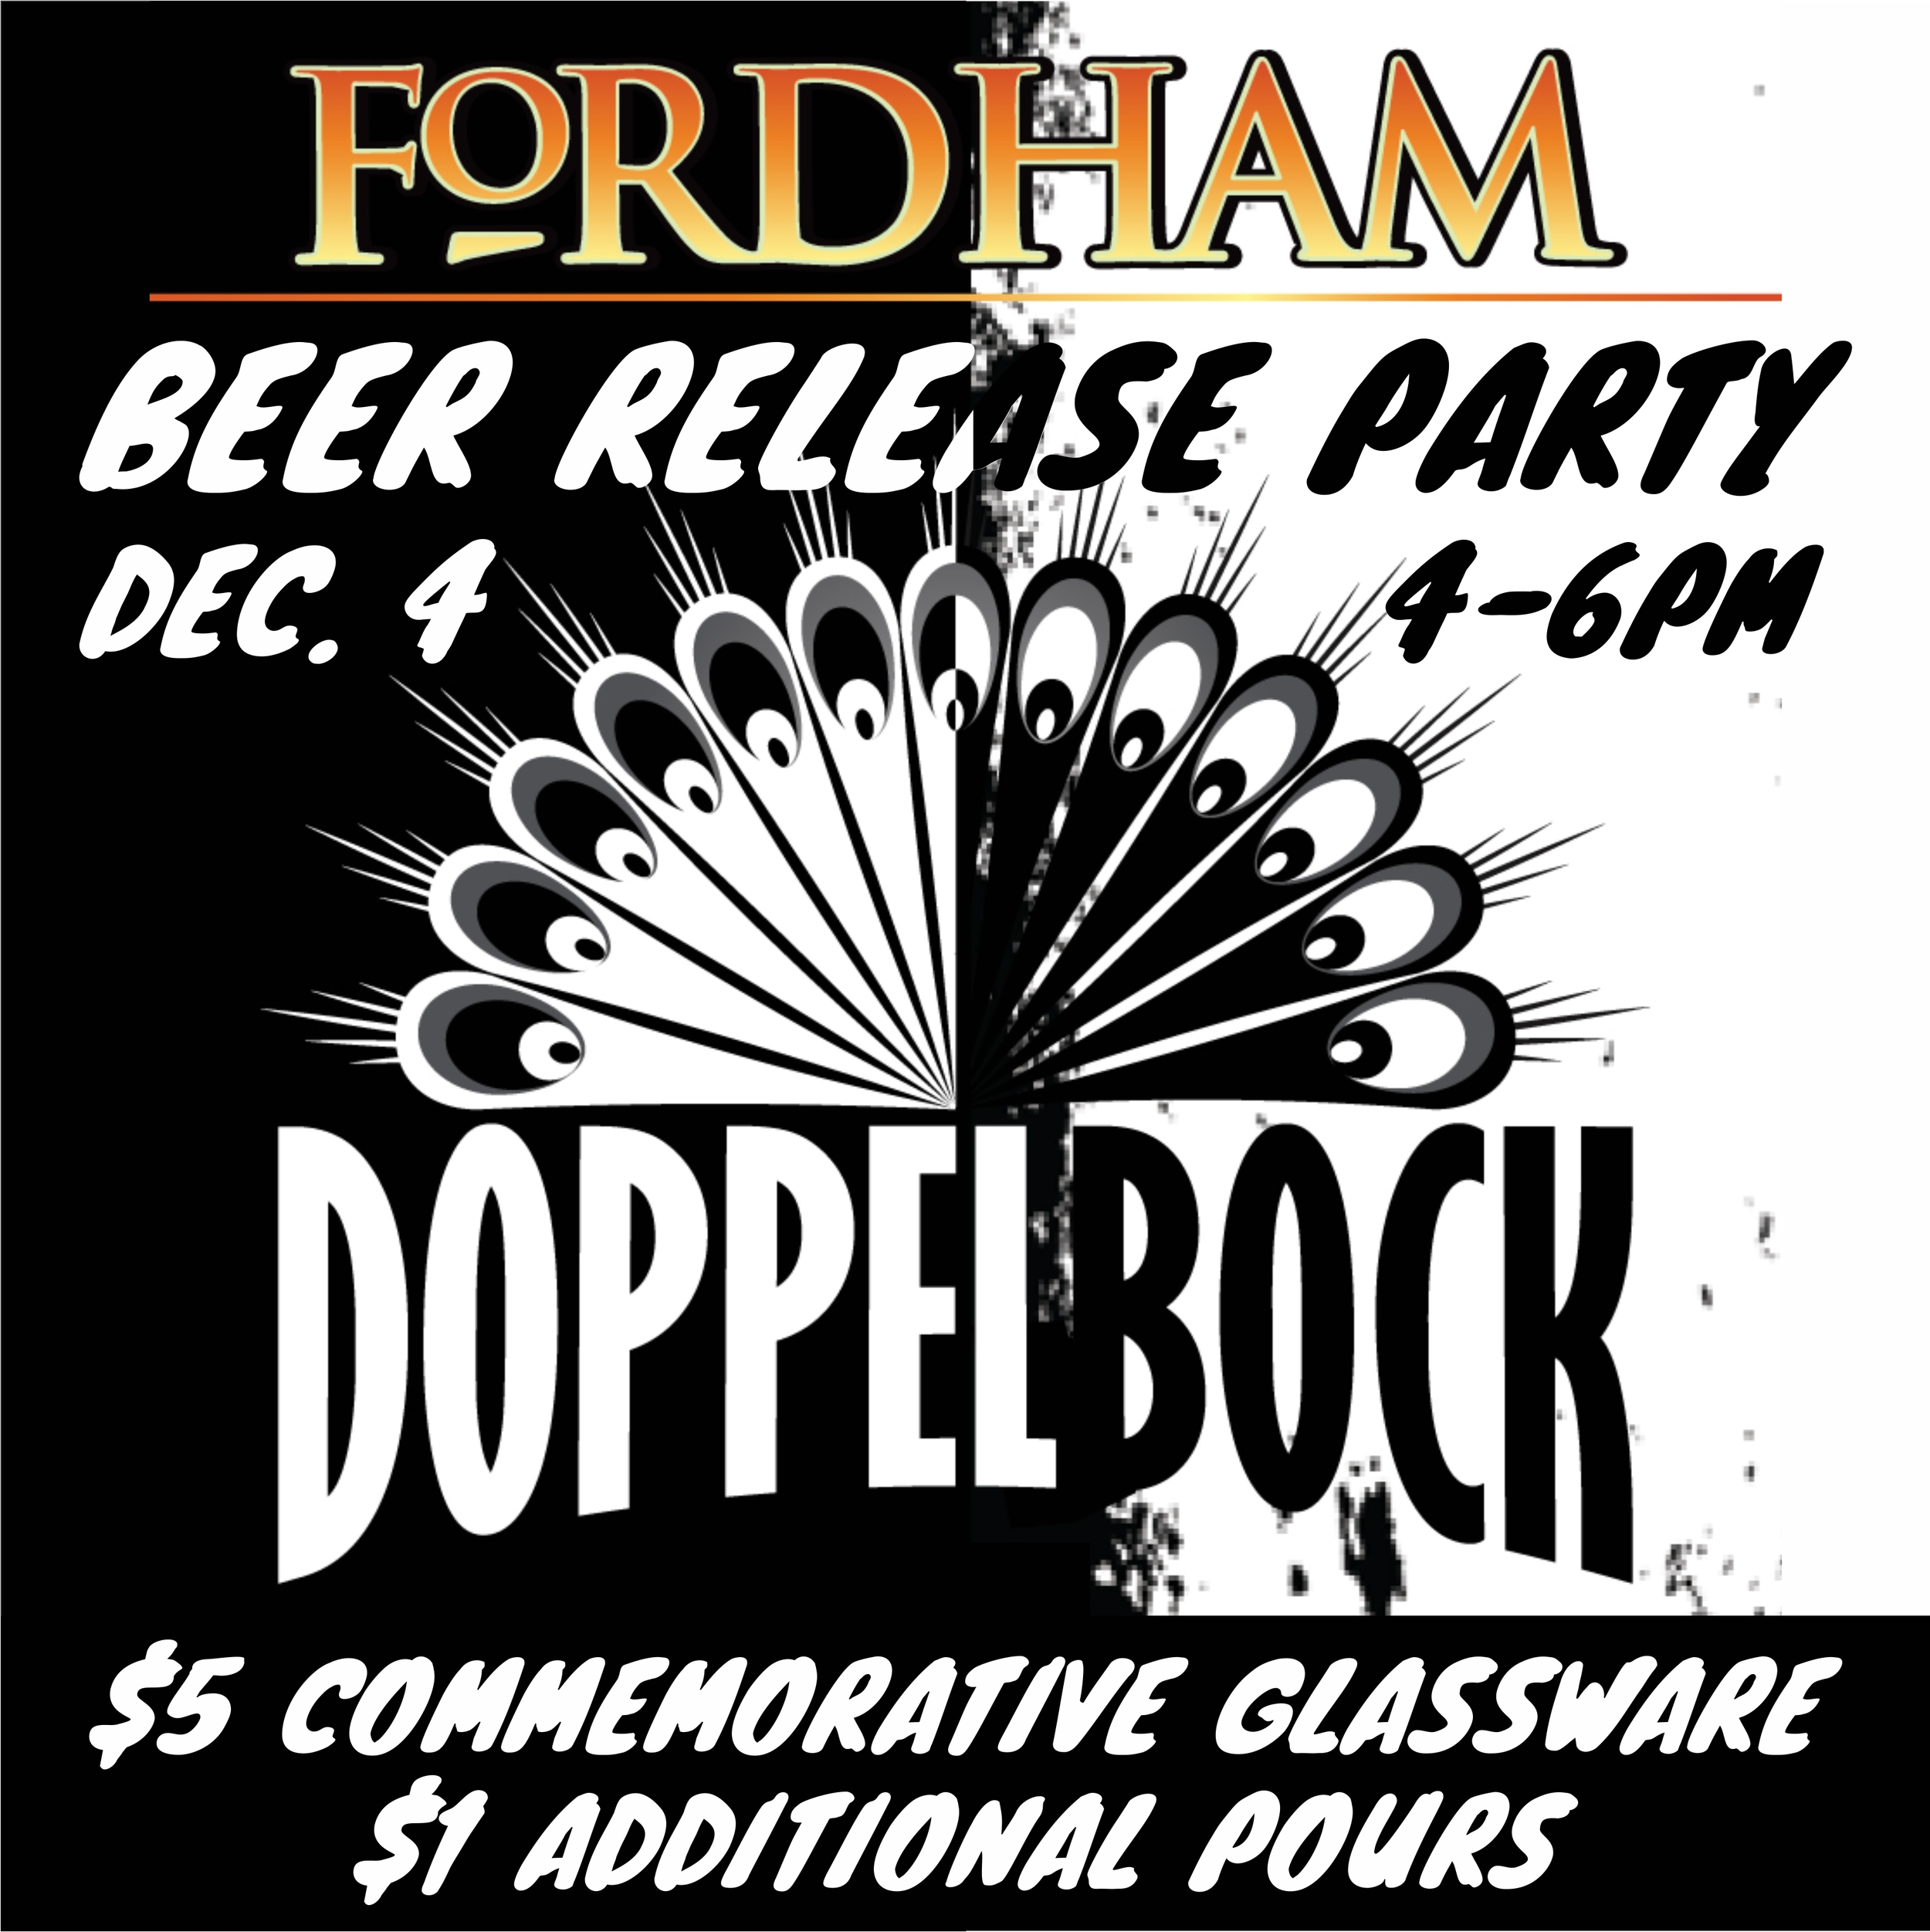 doppelbock beer release rams head DEC. 2014.jpg